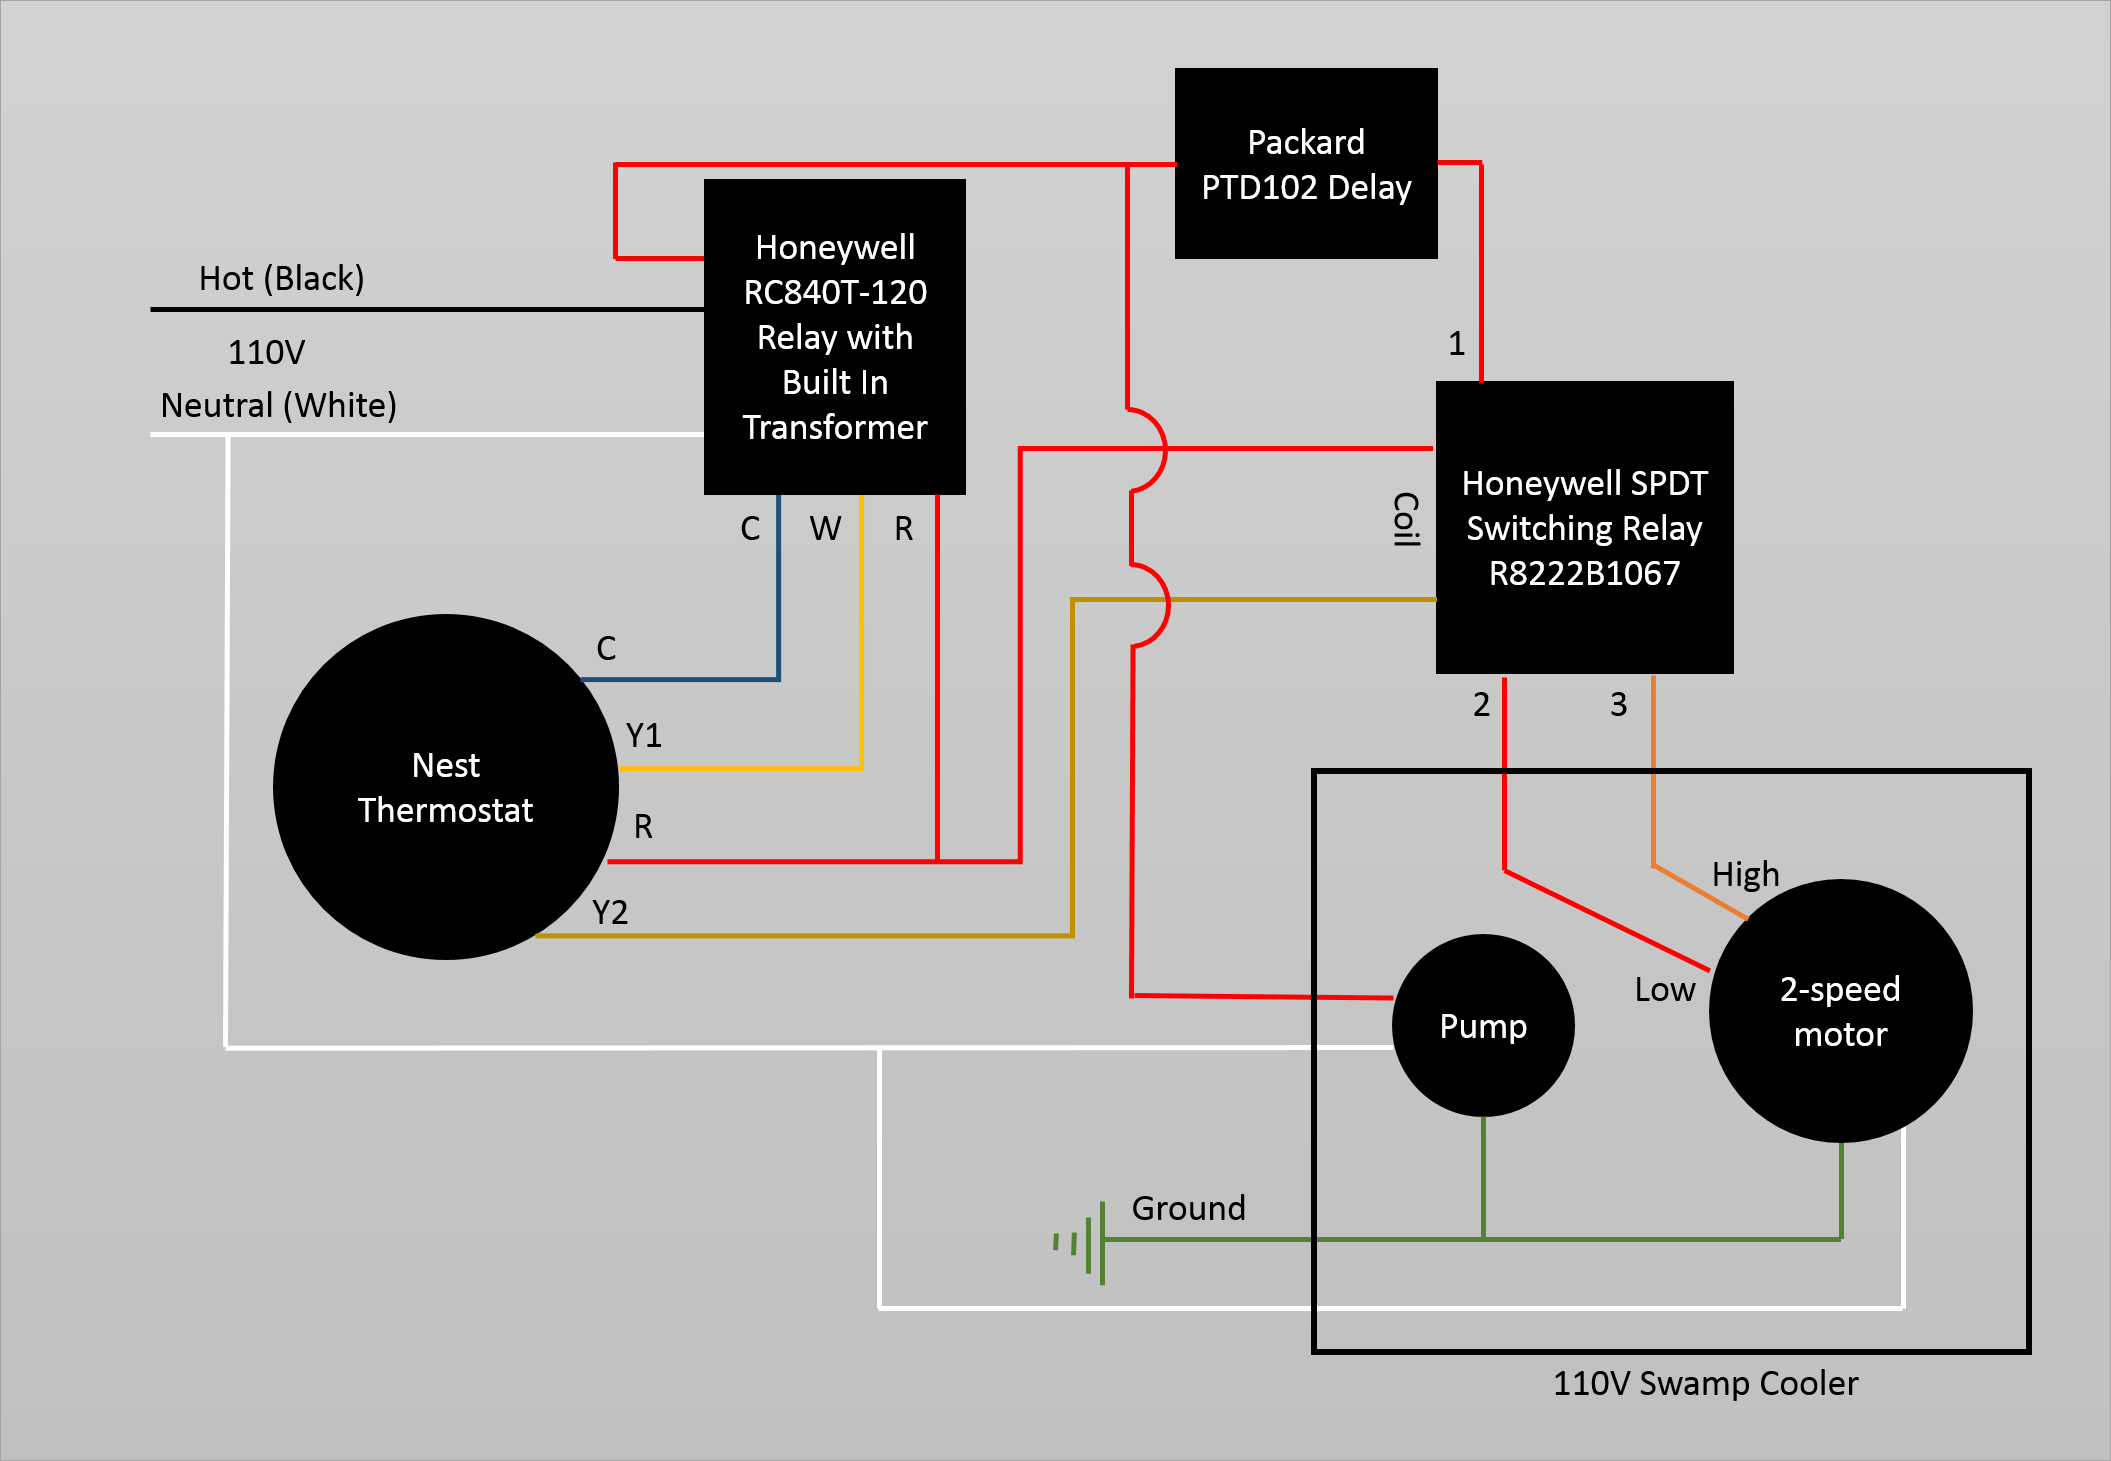 Nest Radiant Heat Wiring Diagram | Wiring Library - Nest Thermostat Wiring Diagram 1St Generation